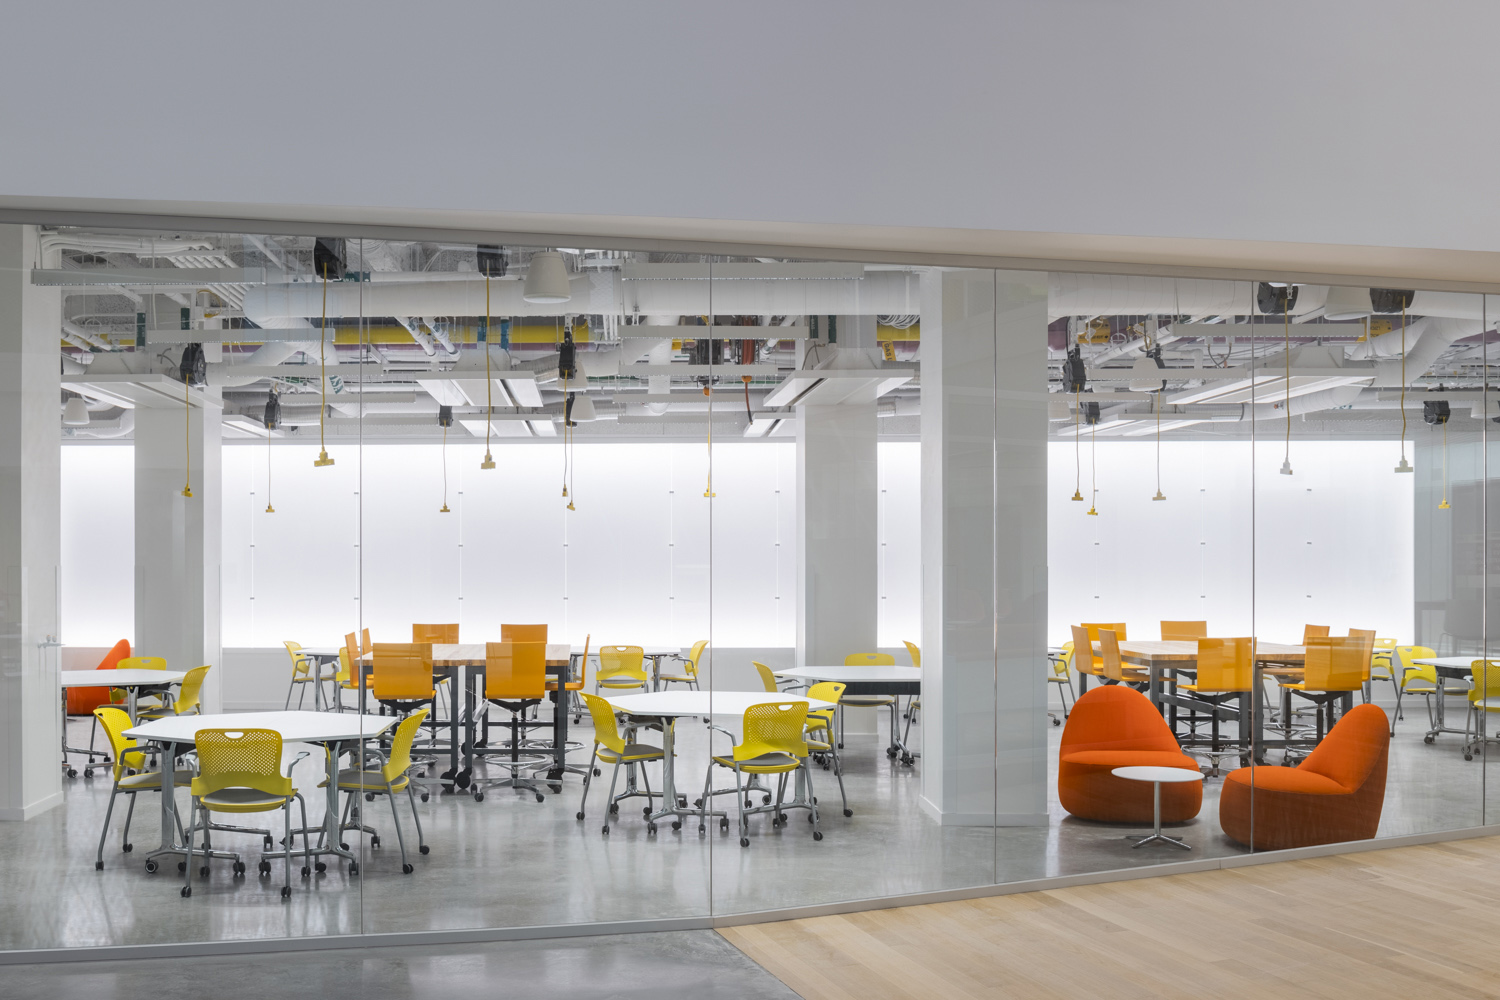 The central atrium connects all levels of the building, transitioning from the more public teaching floors to the more private research floors at the upper levels. Brad Feinknopf